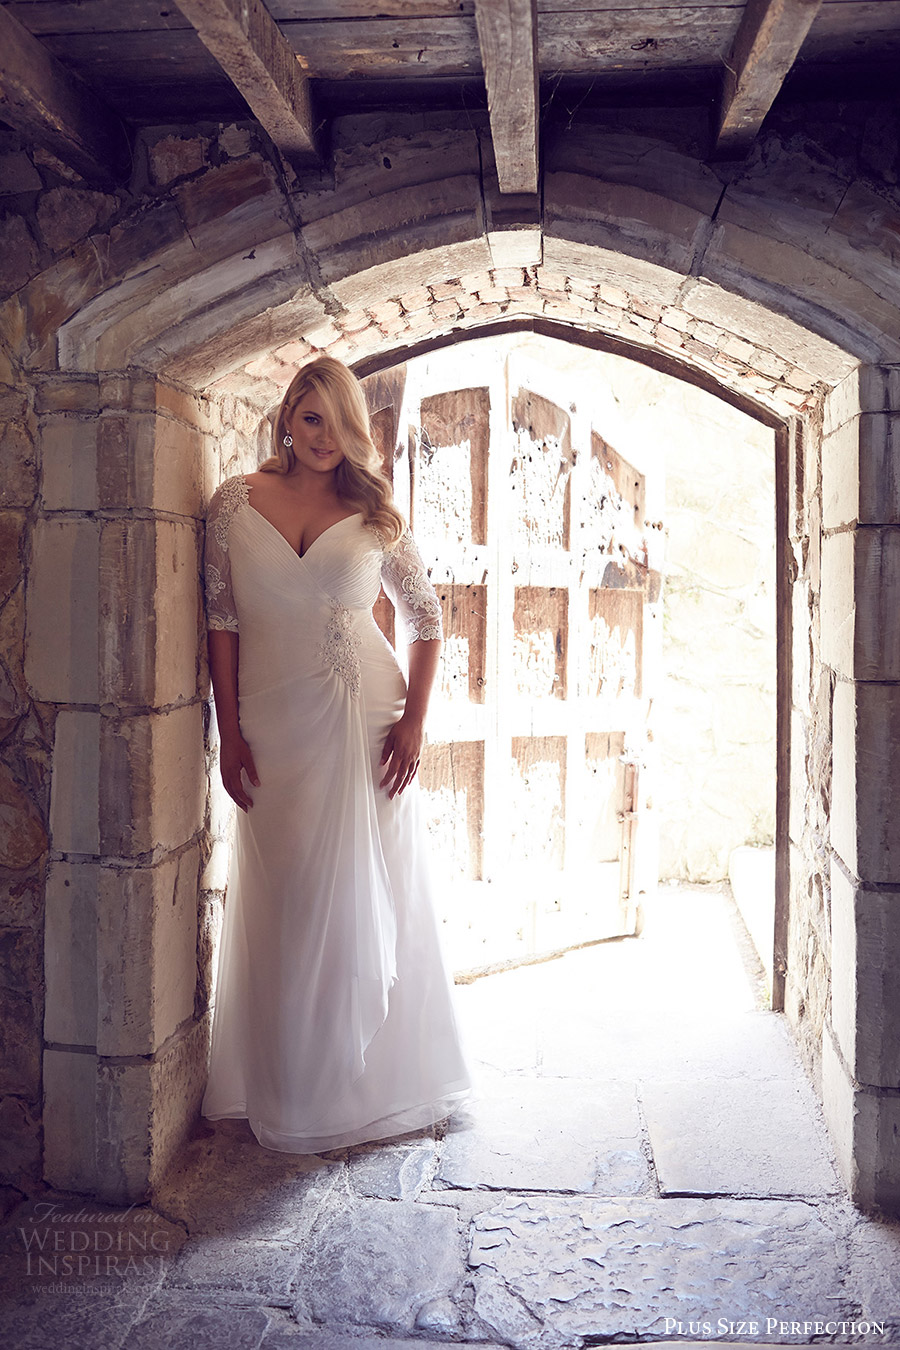 plus size perfection bridal 2016 illusion 3 quarter sleeves vneck draped skirt ruched bodice a line wedding dress (odessa) mv romantic elegant